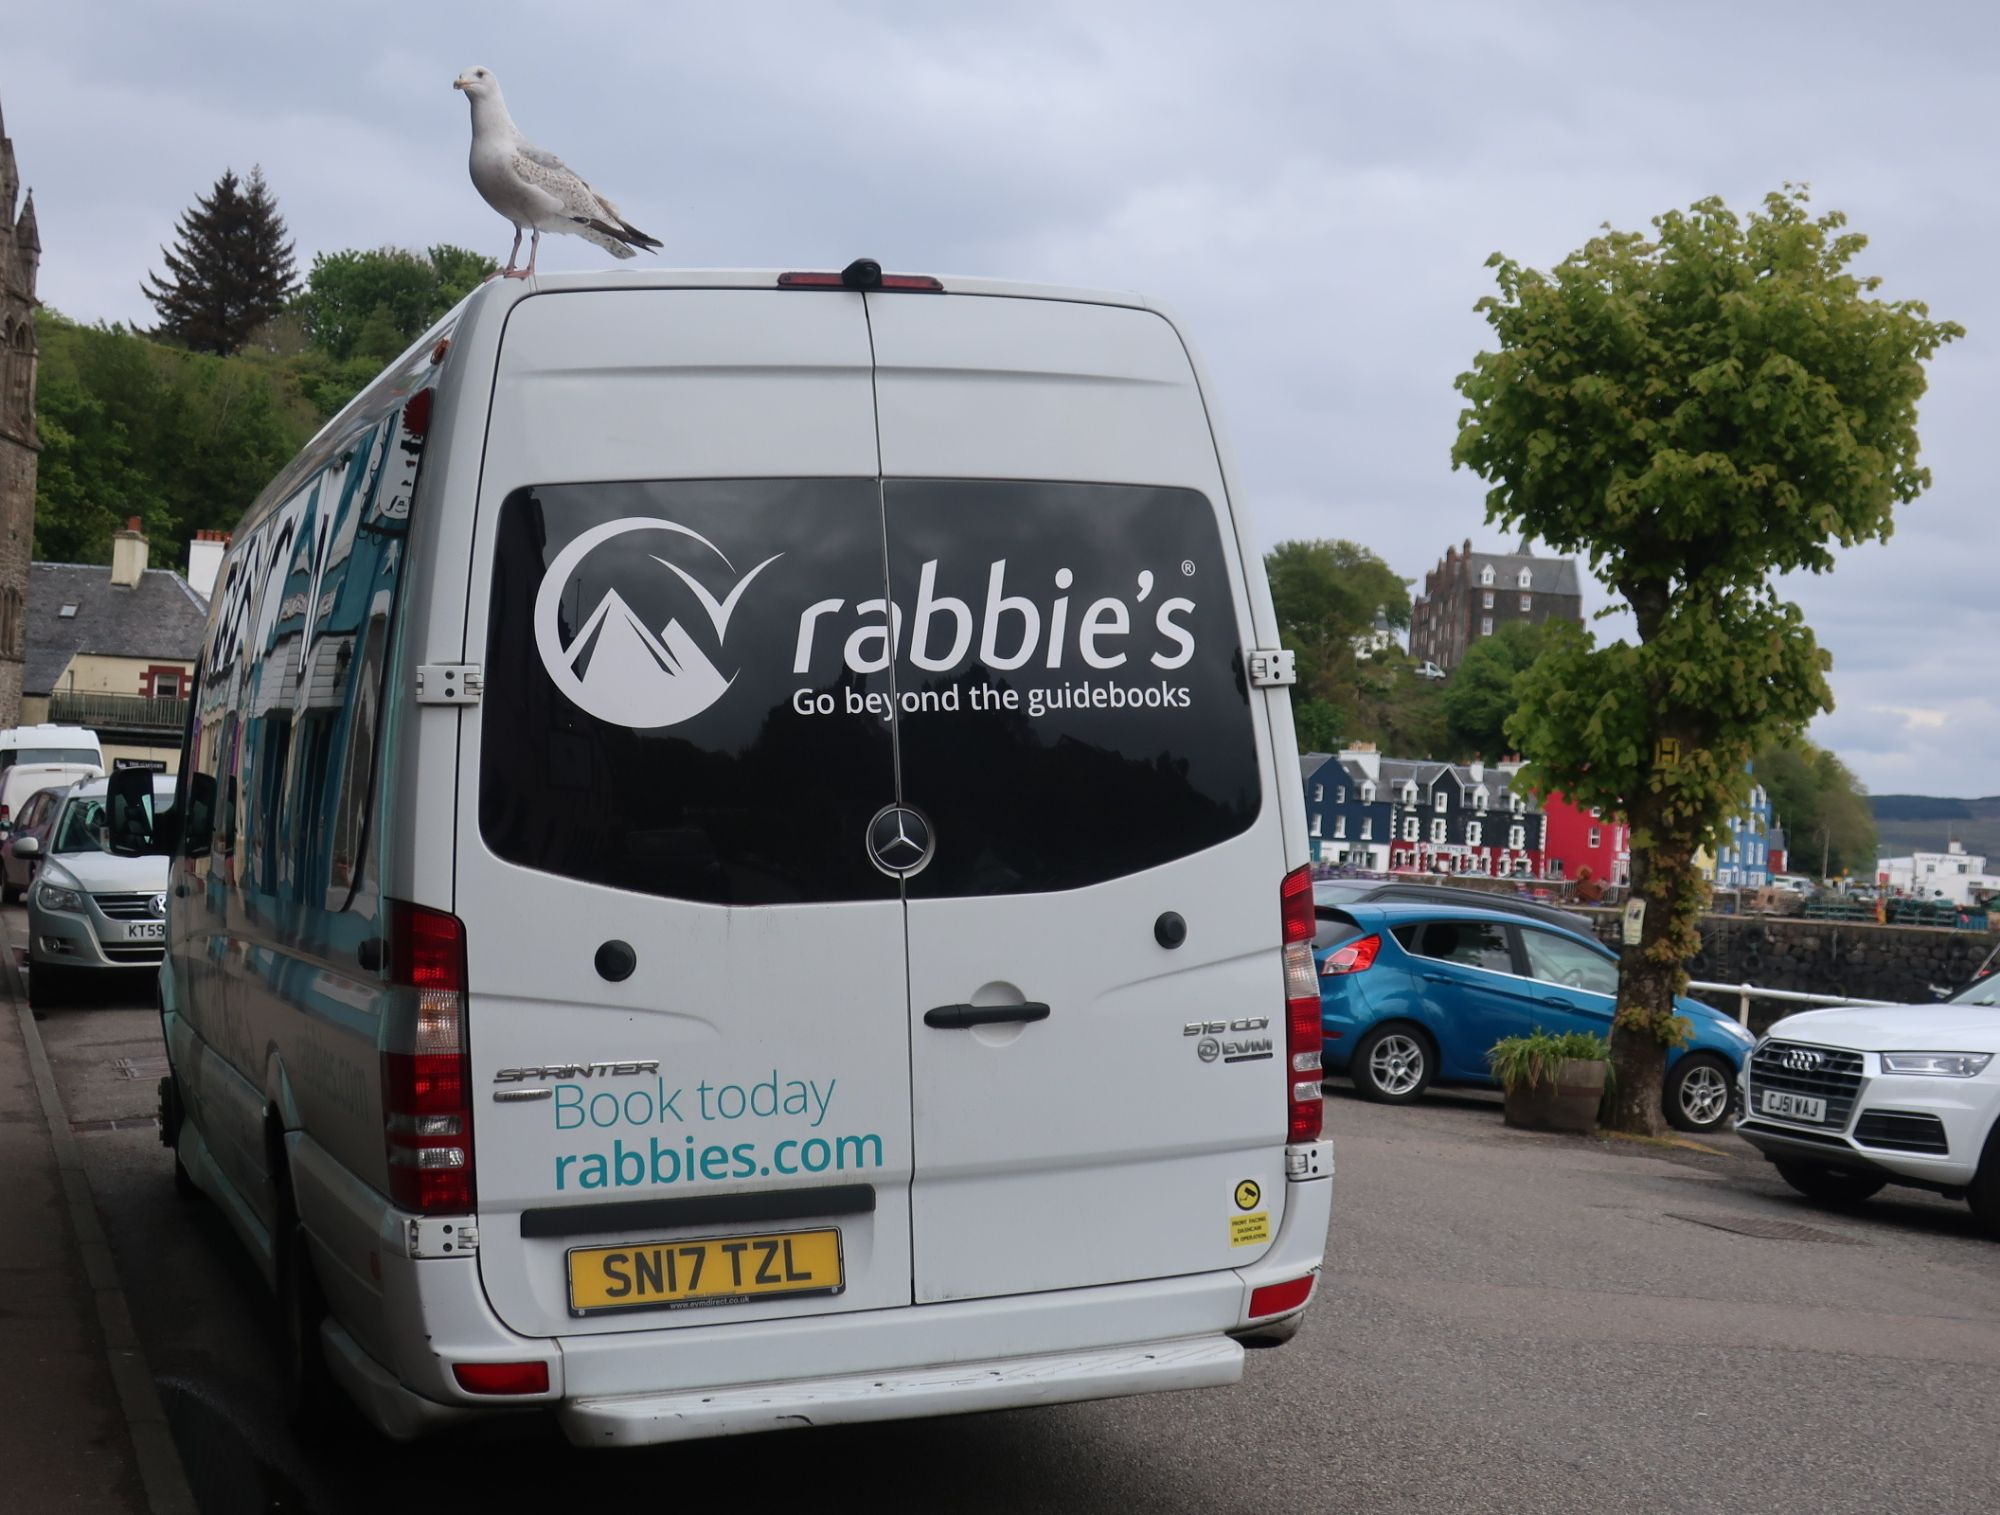 Even seagulls to Rabbies